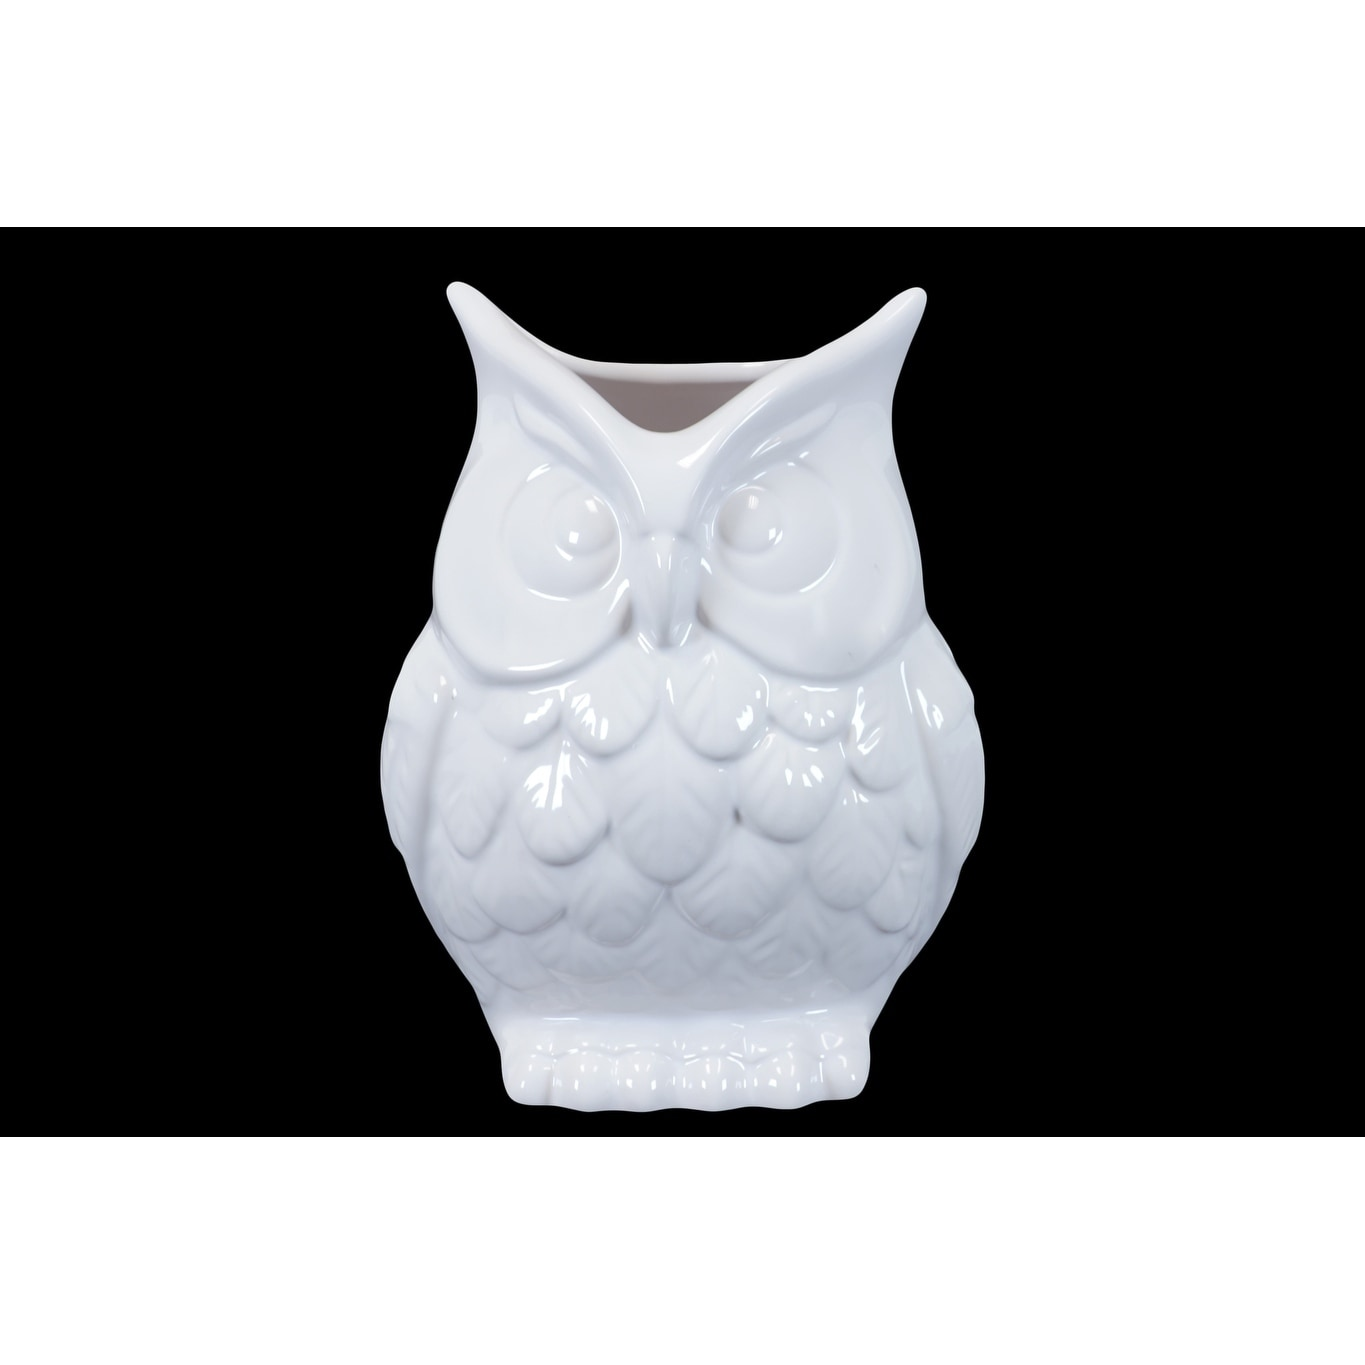 Ceramic white owl vase white 190563704641 ebay ceramic white owl vase white reviewsmspy